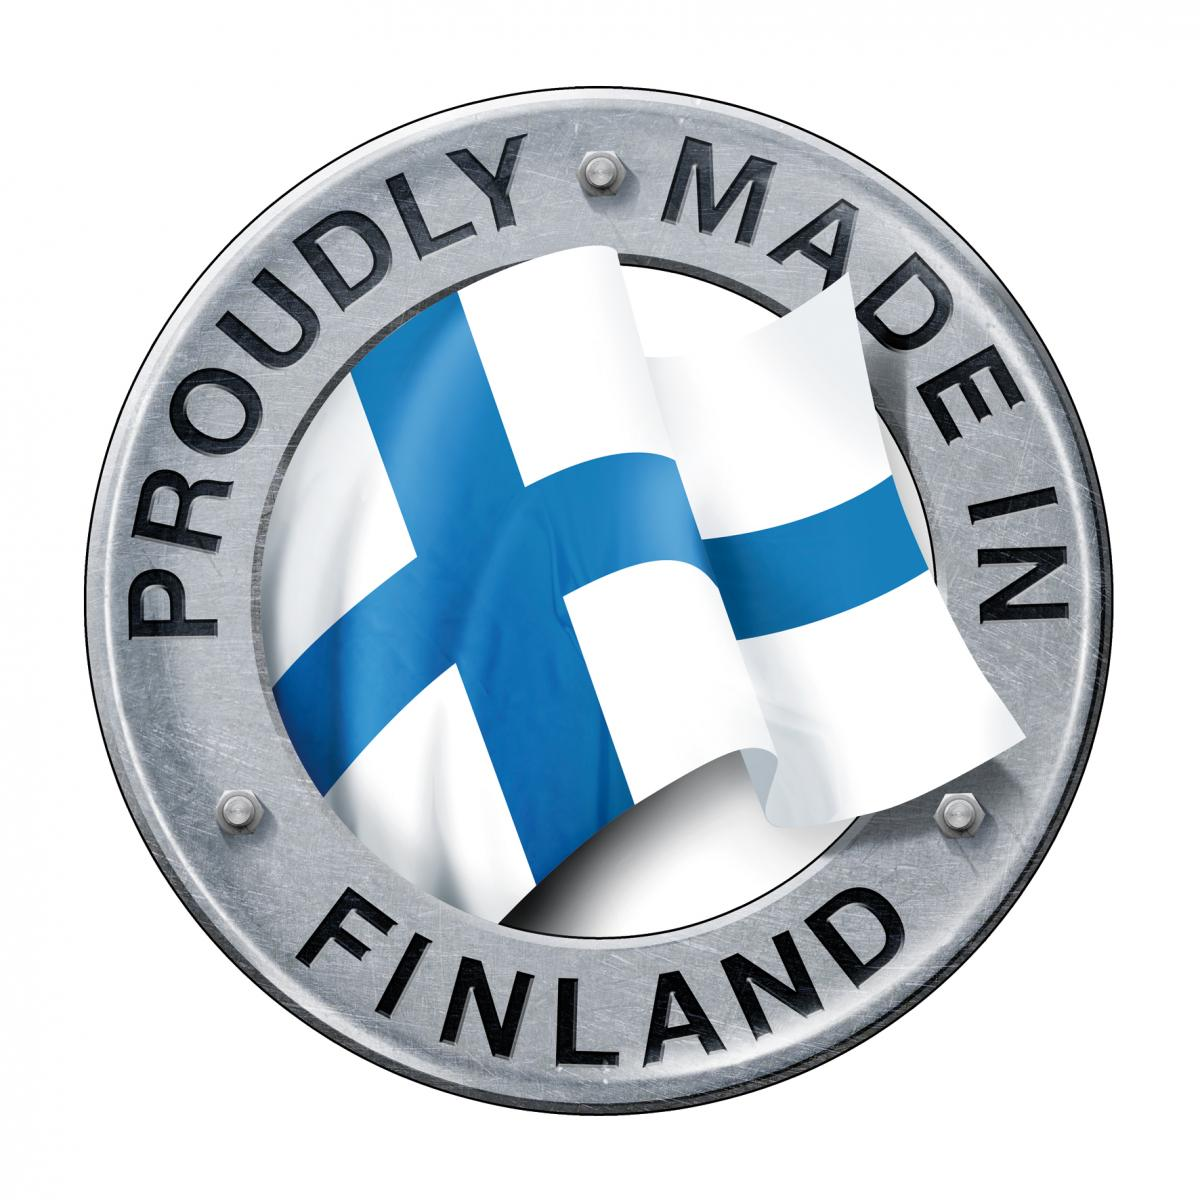 Proudly made in Finland